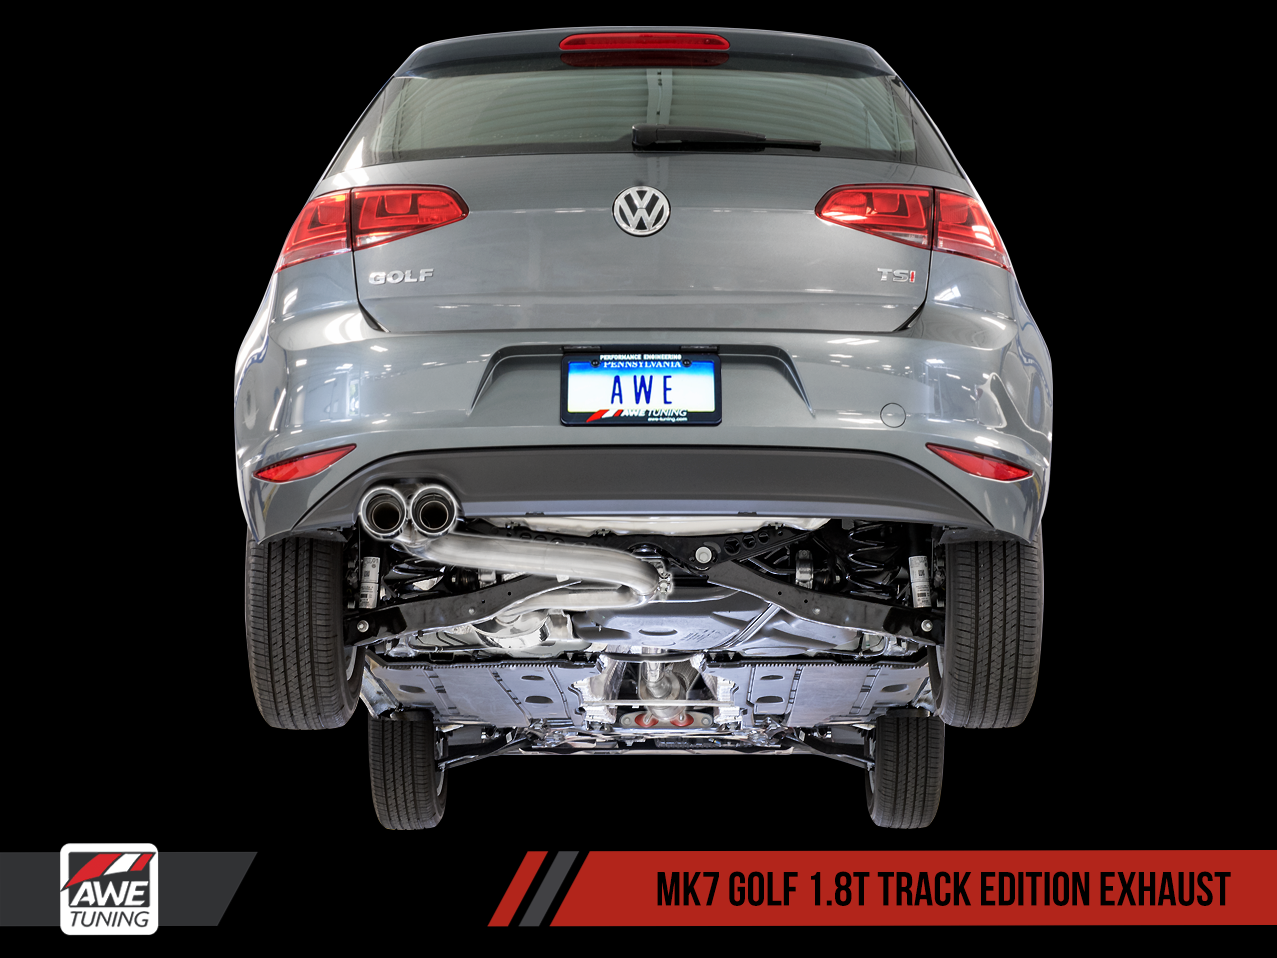 Introducing The Awe Tuning Vw Mk7 Golf 1 8t Exhaust Suite Now Available Vw Vortex Volkswagen Forum